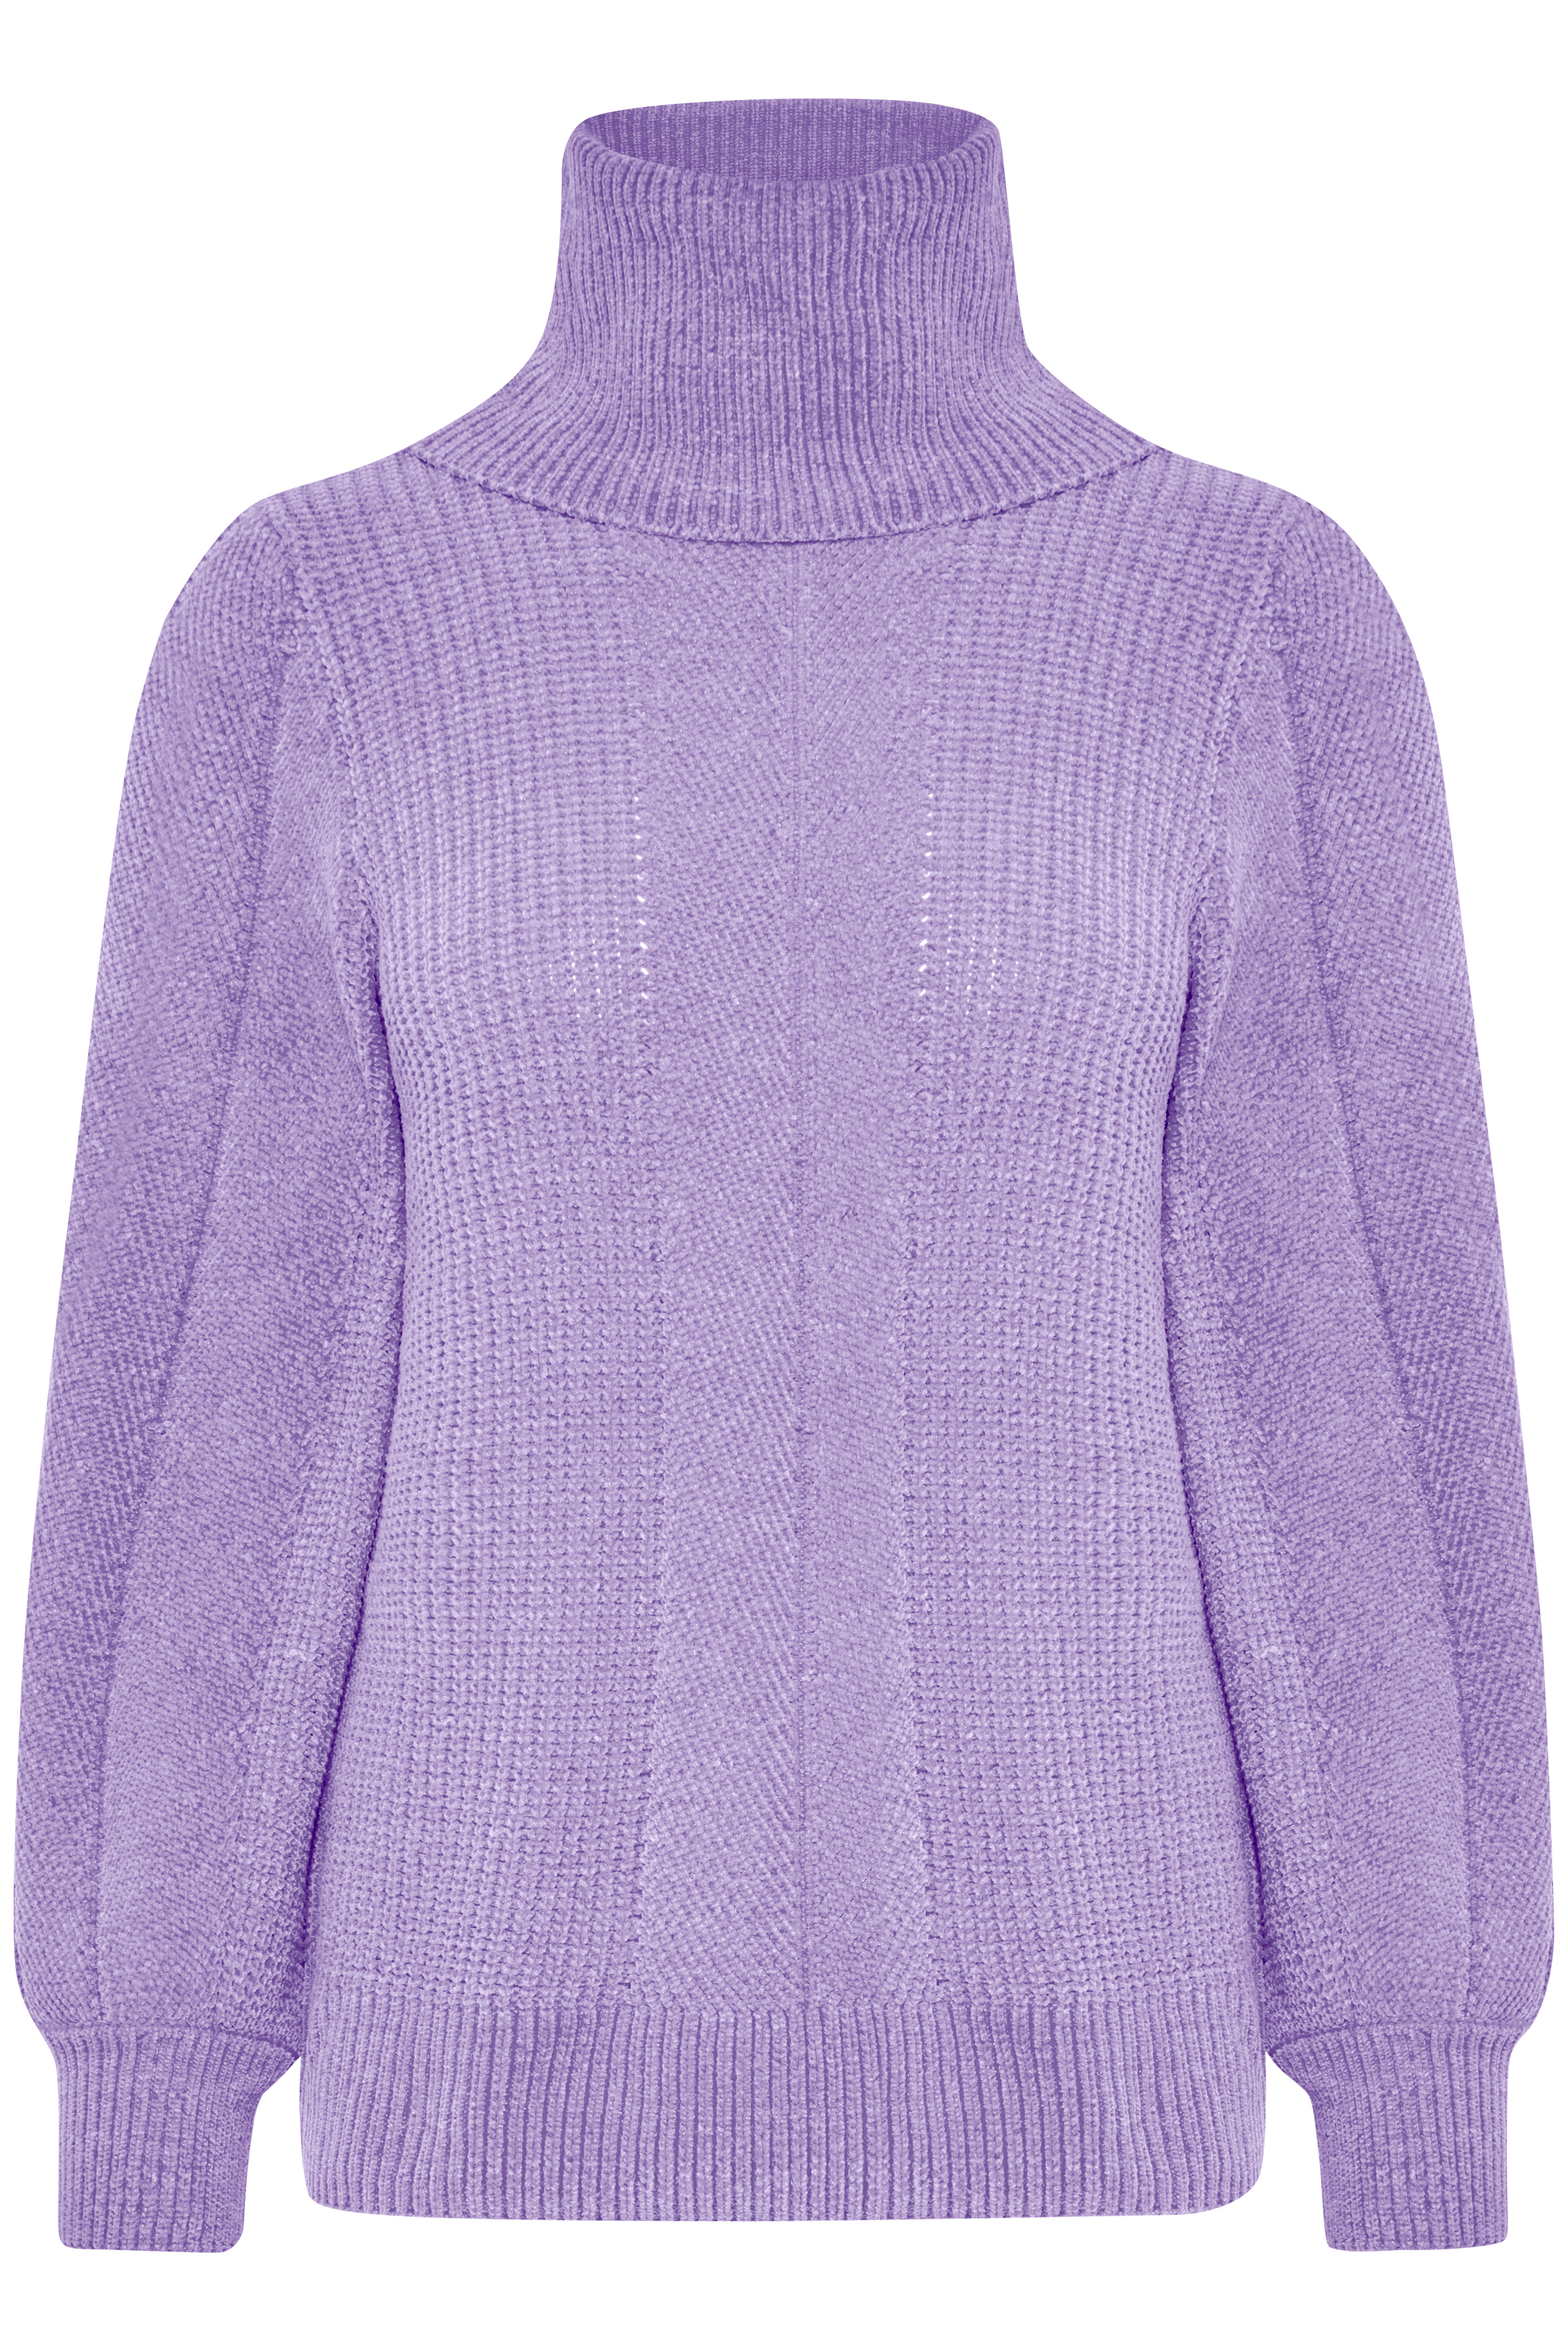 Violet Tulip Knitted pullover from b.young – Buy Violet Tulip Knitted pullover from size S-XXL here